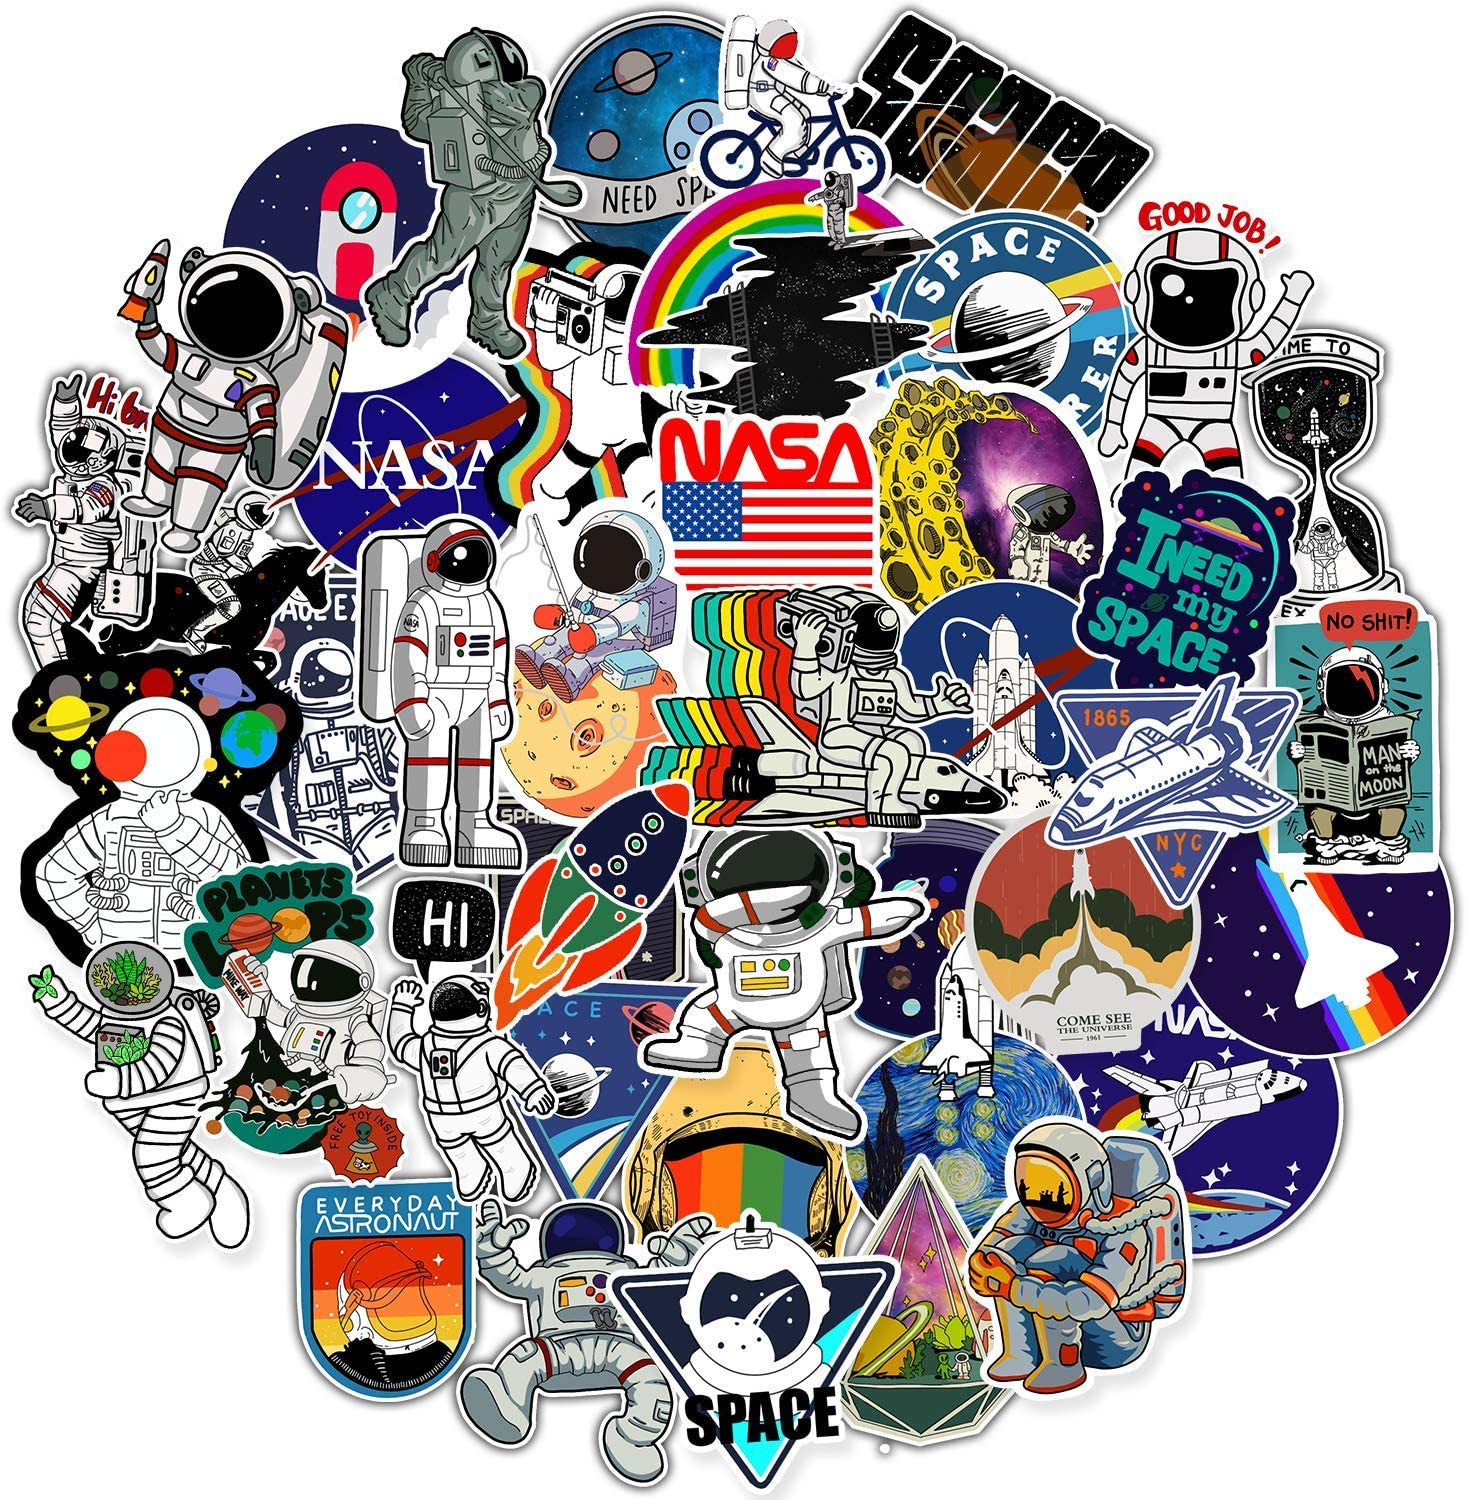 NASA Stickers for Laptop, Space Explorer Galaxy Vinyl Sticker for Water Bottle Hydro Flask Car Bumper Skateboard Luggage, Spaceman Spacecraft Universe Planet Graffiti Decals for Vsco Girl Boy,50 Pack